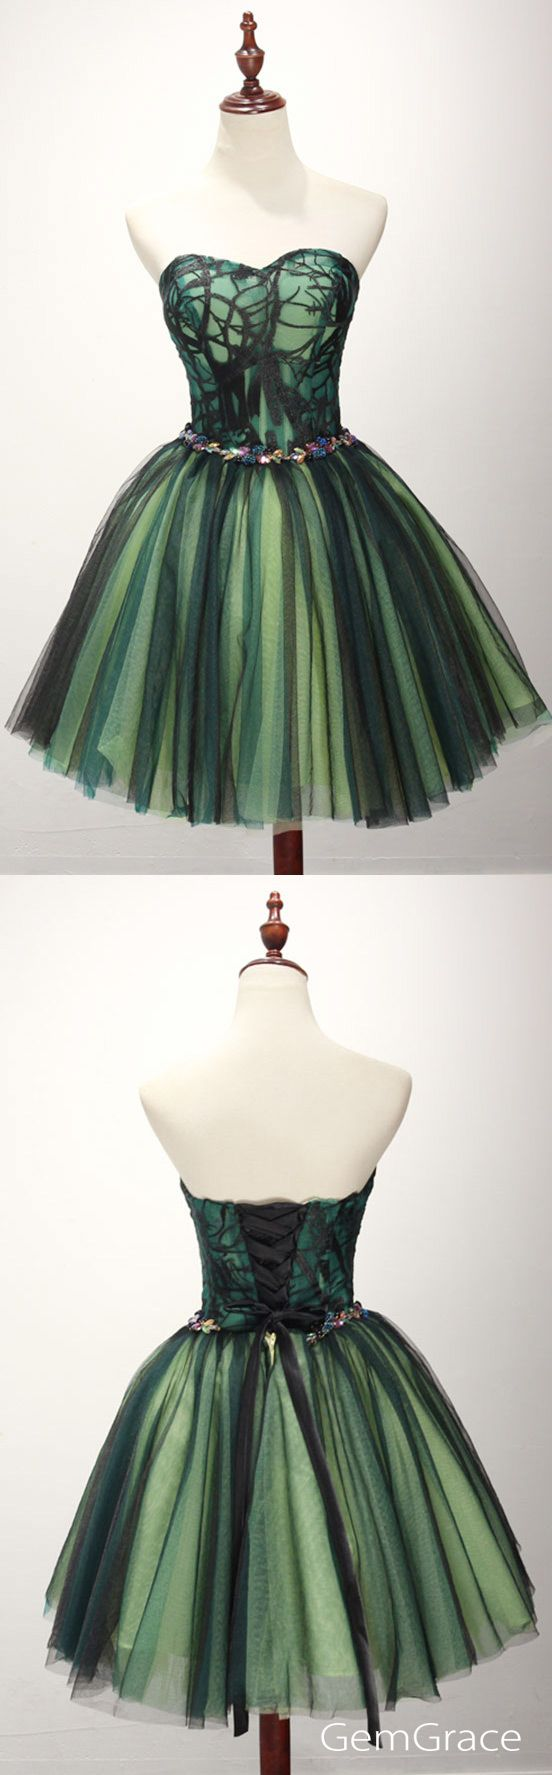 Vintage black green short prom homecoming dress for teens tulle